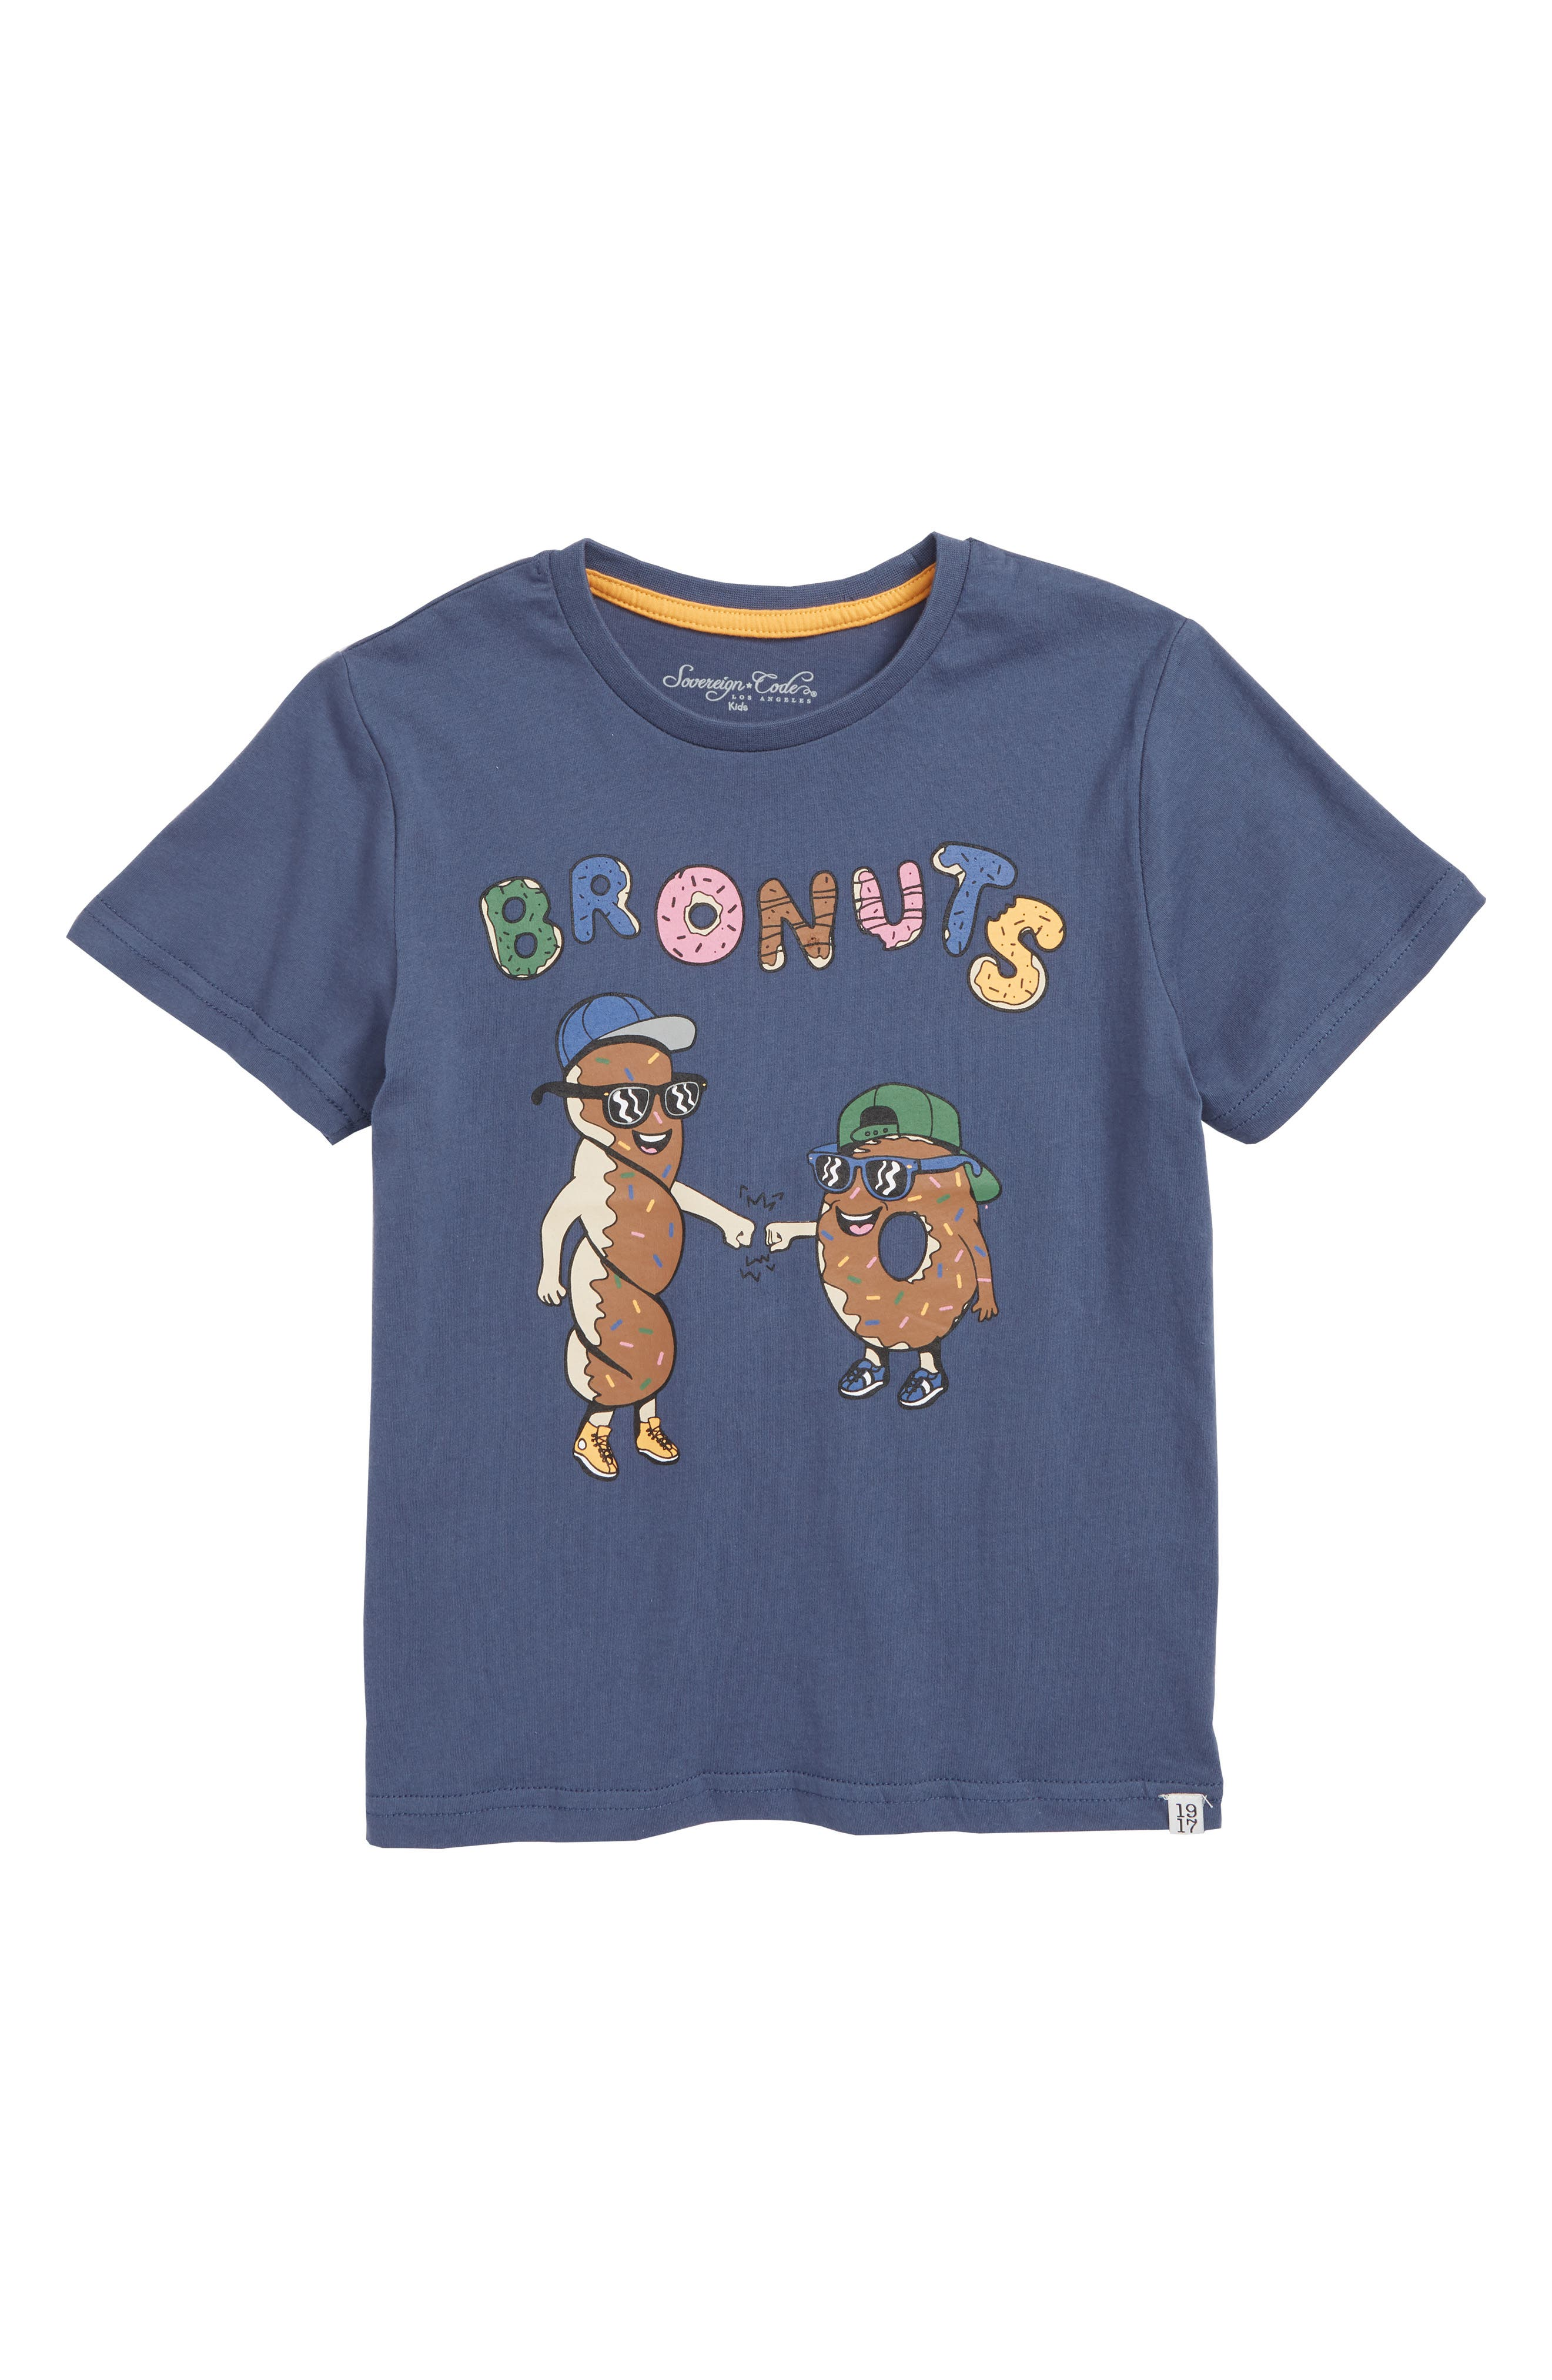 Rome Bronuts Graphic T-Shirt,                             Main thumbnail 1, color,                             SLATE